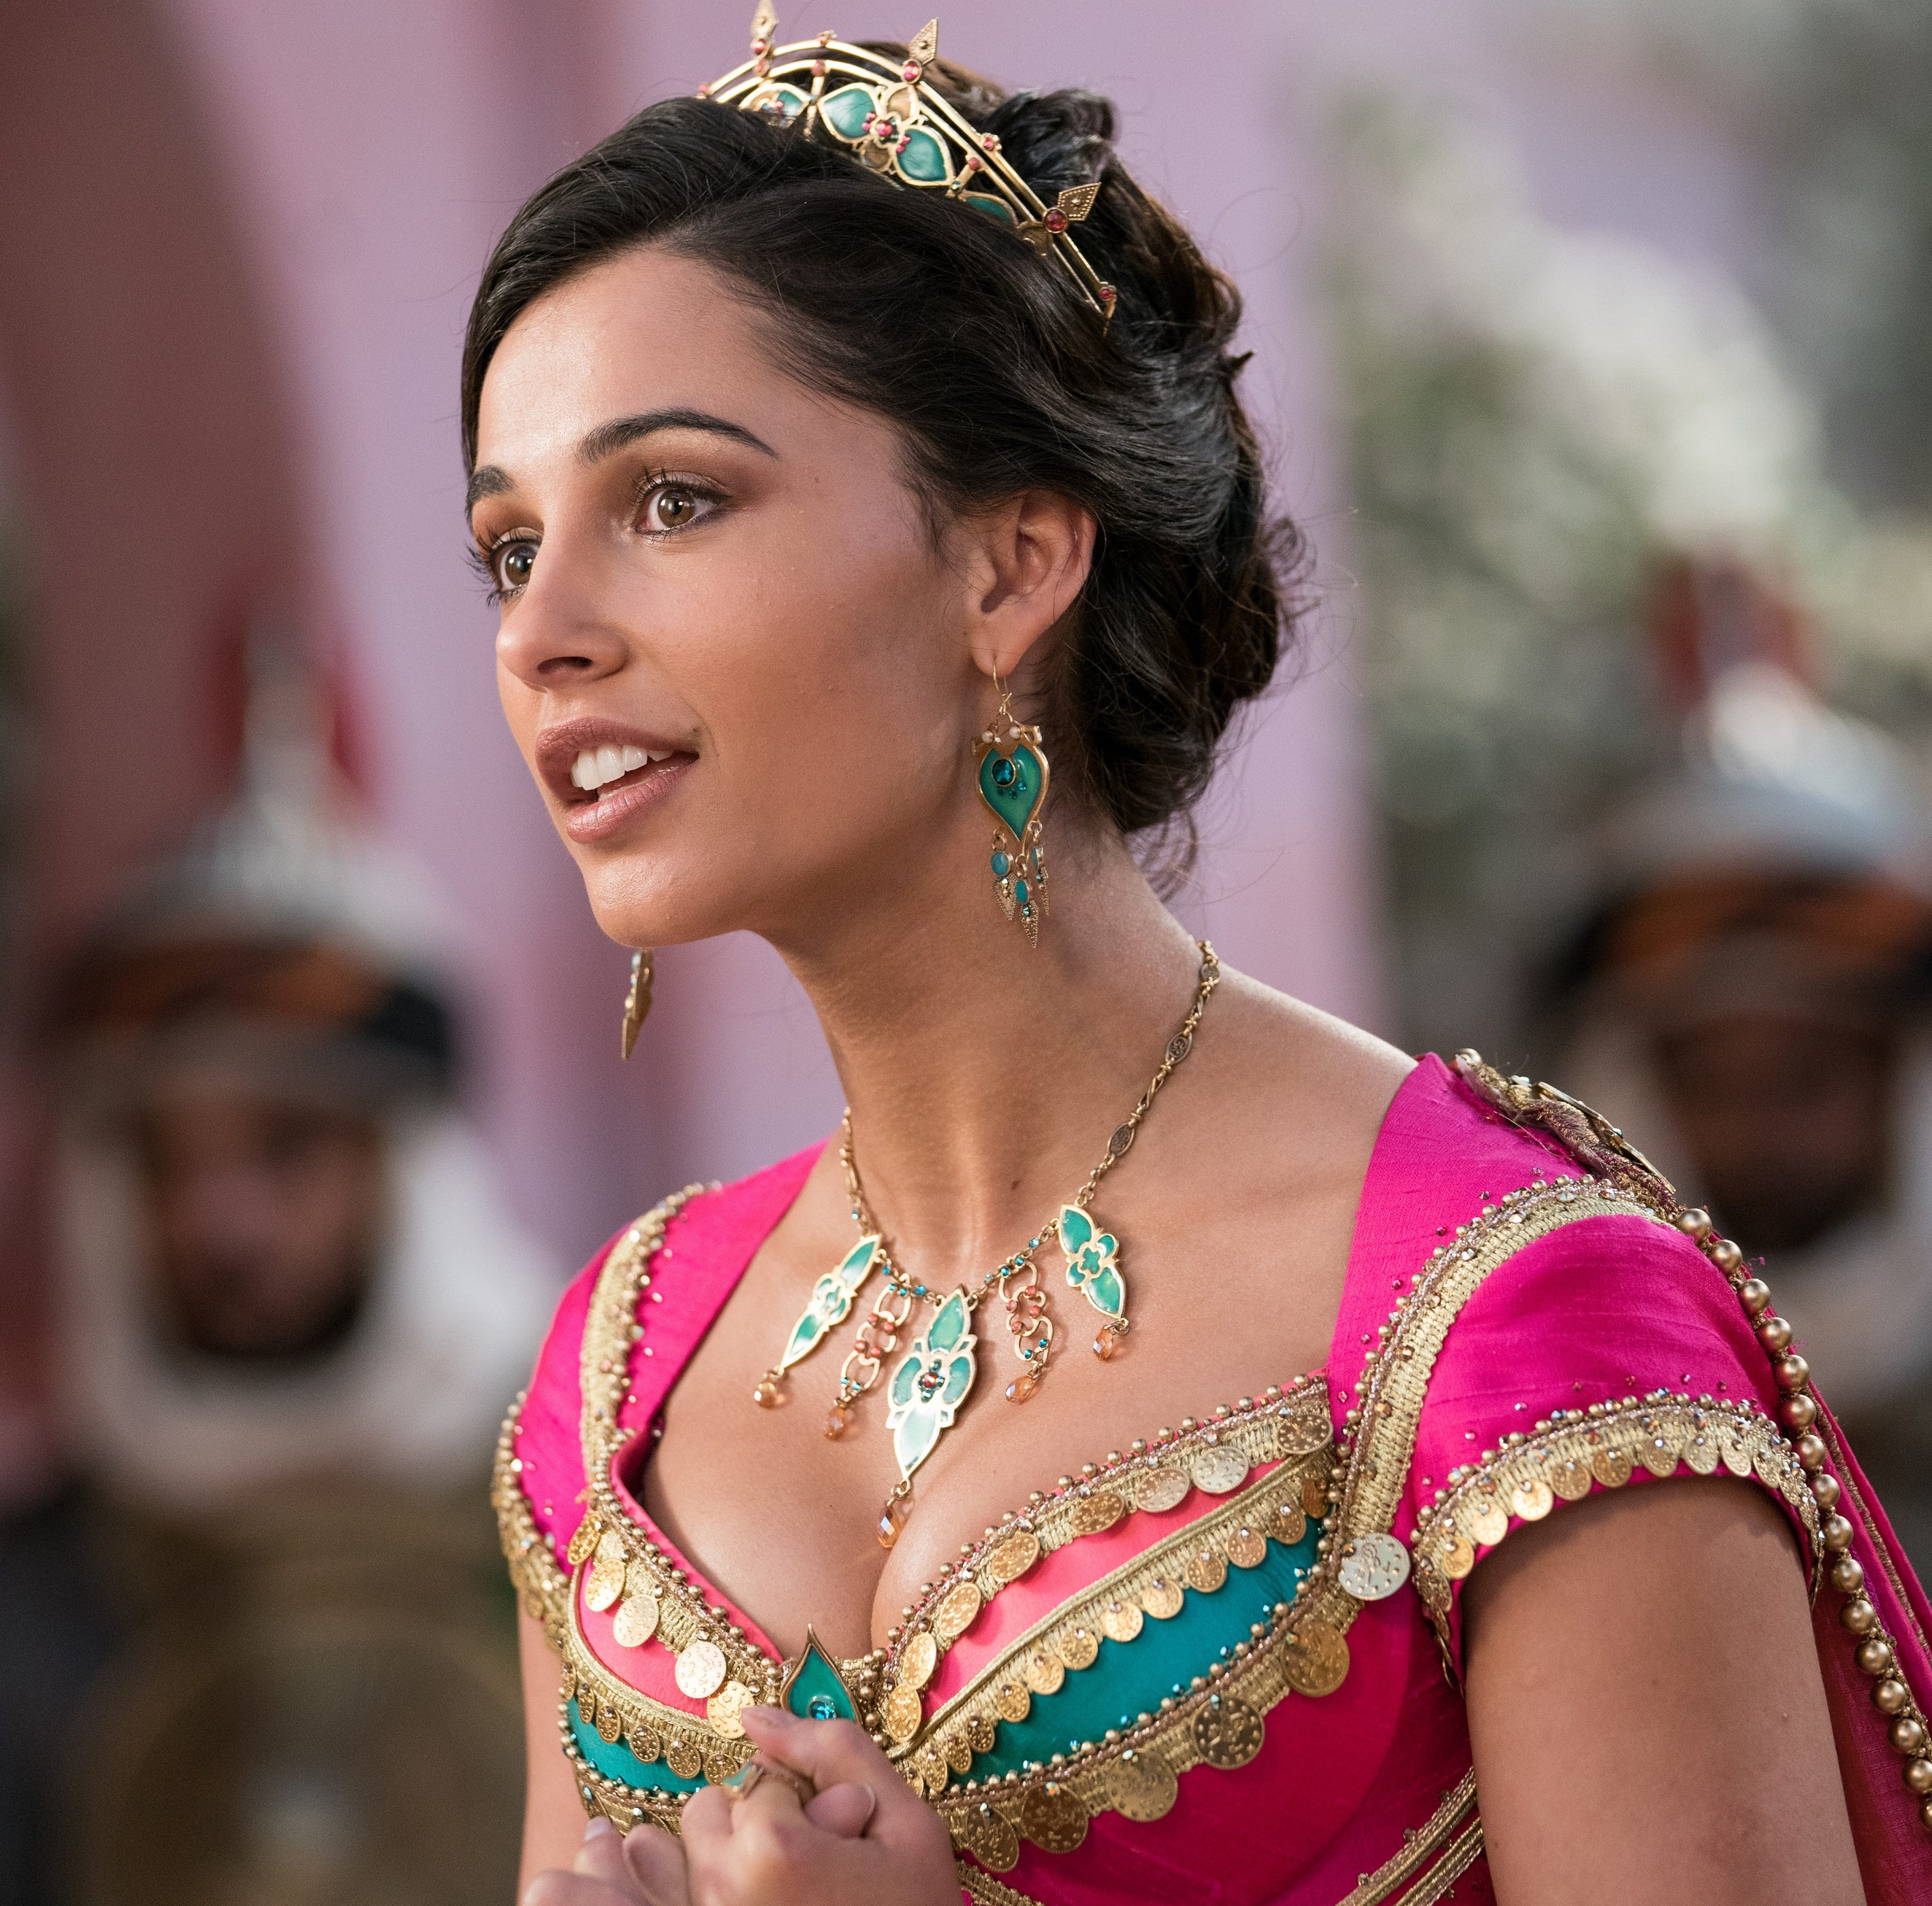 New movies this week: 'Aladdin,' 'Booksmart,' 'Lost and Found'